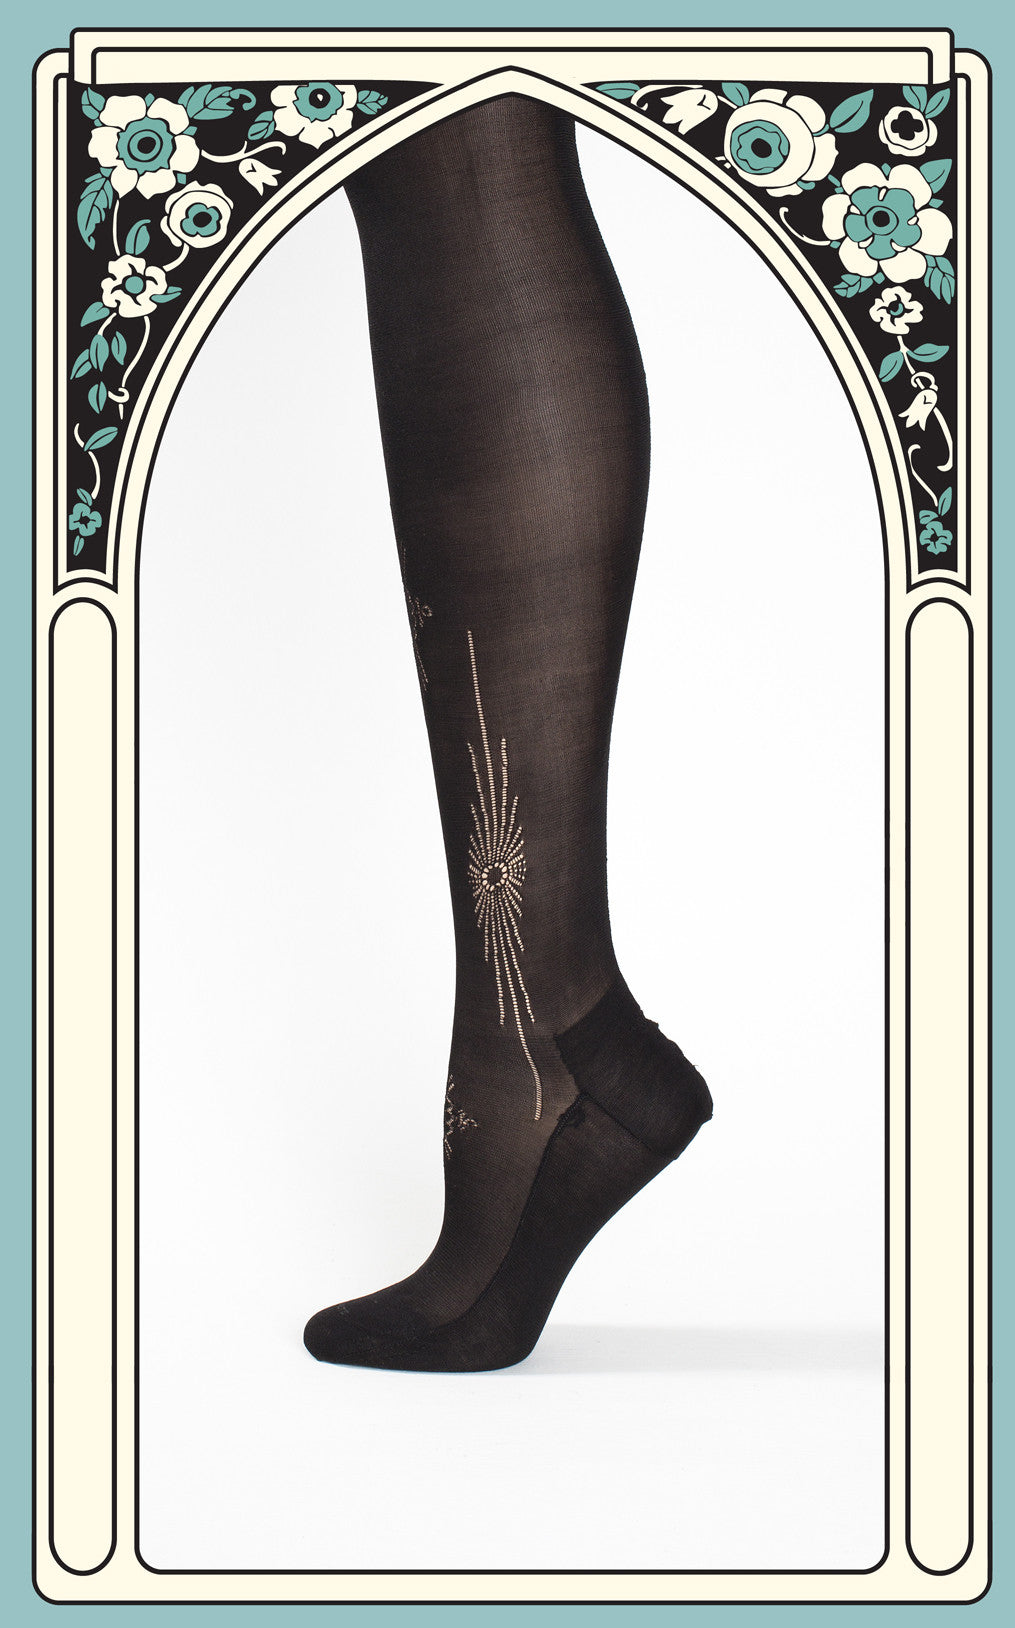 SOLD -- Rare 1920s Van Raalte Black Thigh High Silk Seamed Stockings with Starburst Cutouts